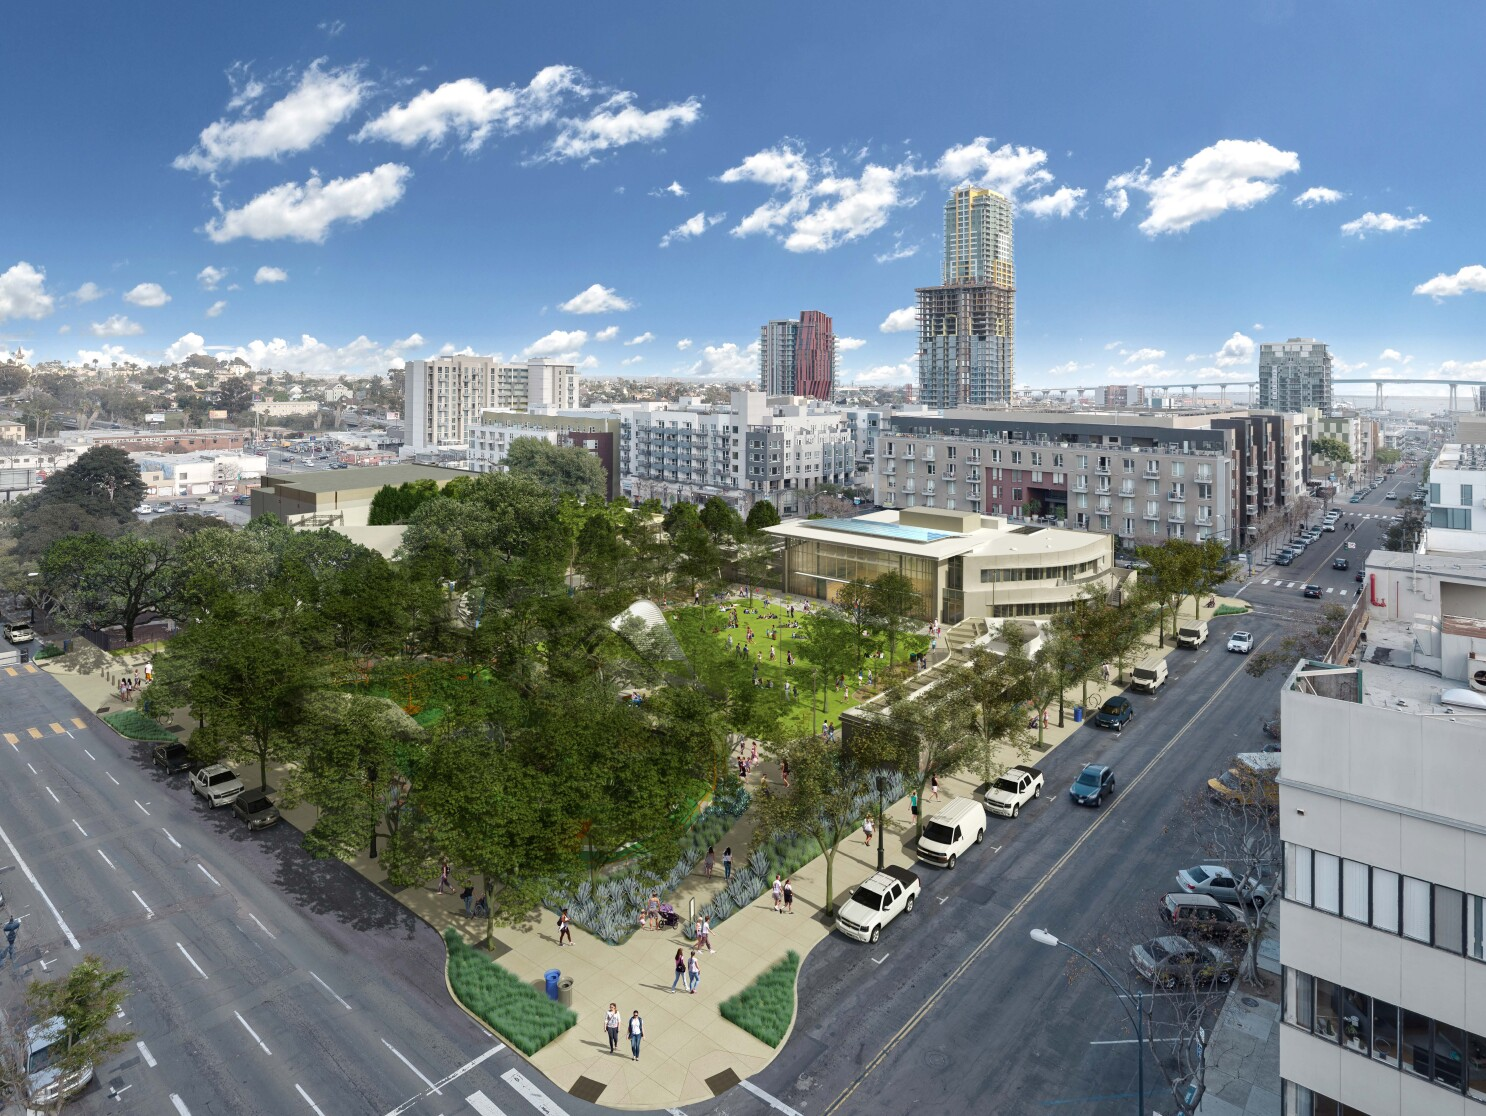 East Village Green, a $52M city park, on track to open in the summer of 2022